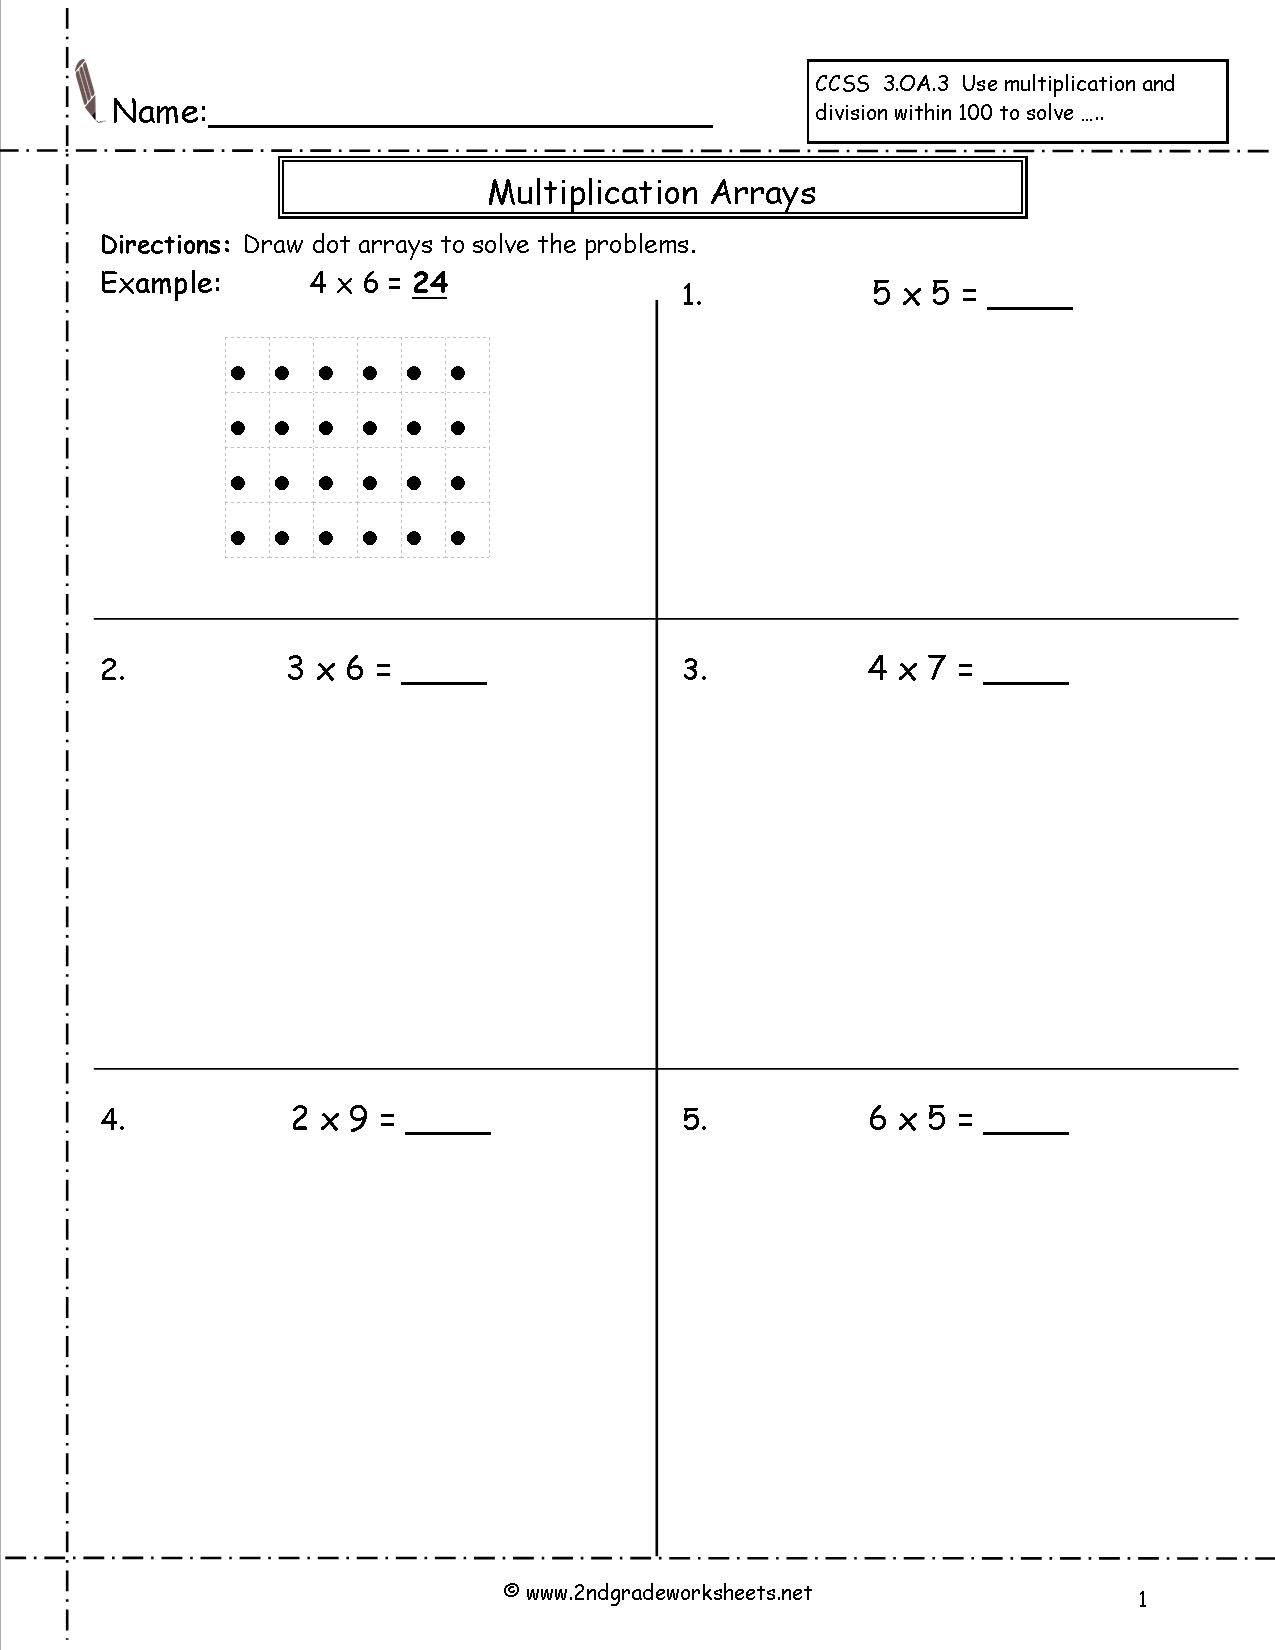 multiplication array worksheets temporary board array worksheets multiplication math. Black Bedroom Furniture Sets. Home Design Ideas